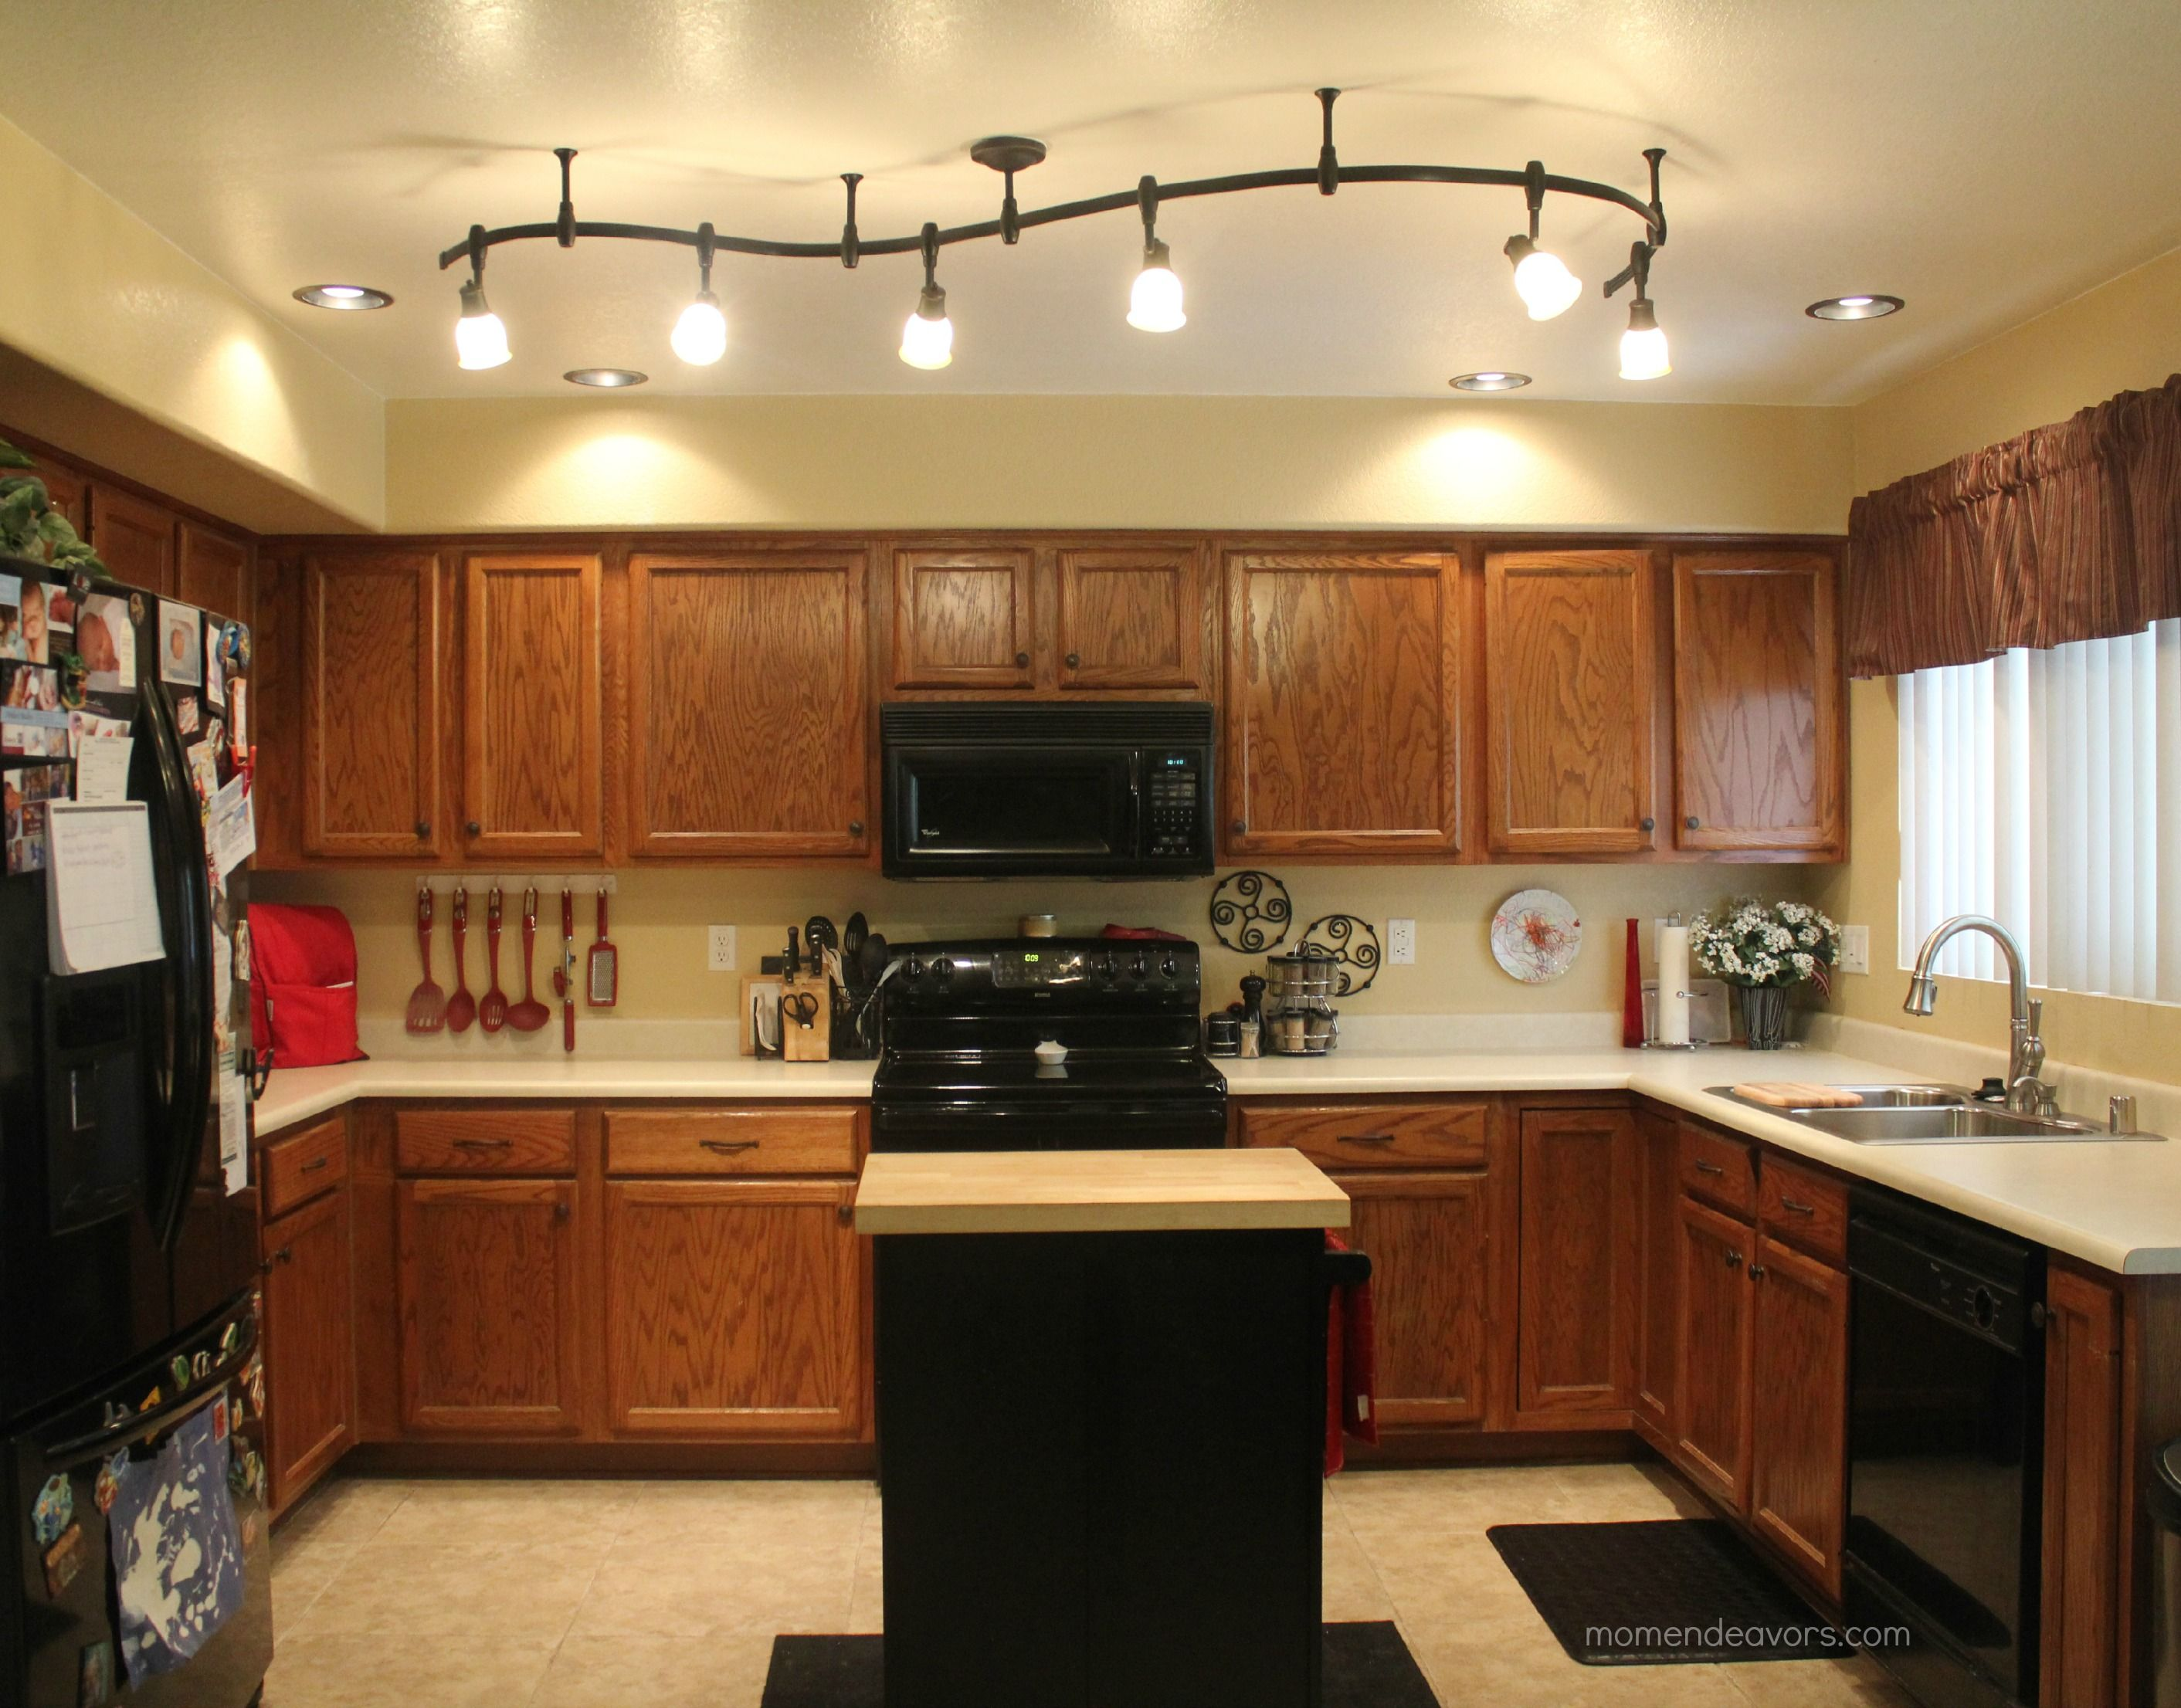 Kitchen Lighting: Brilliance on a Budget | DIY